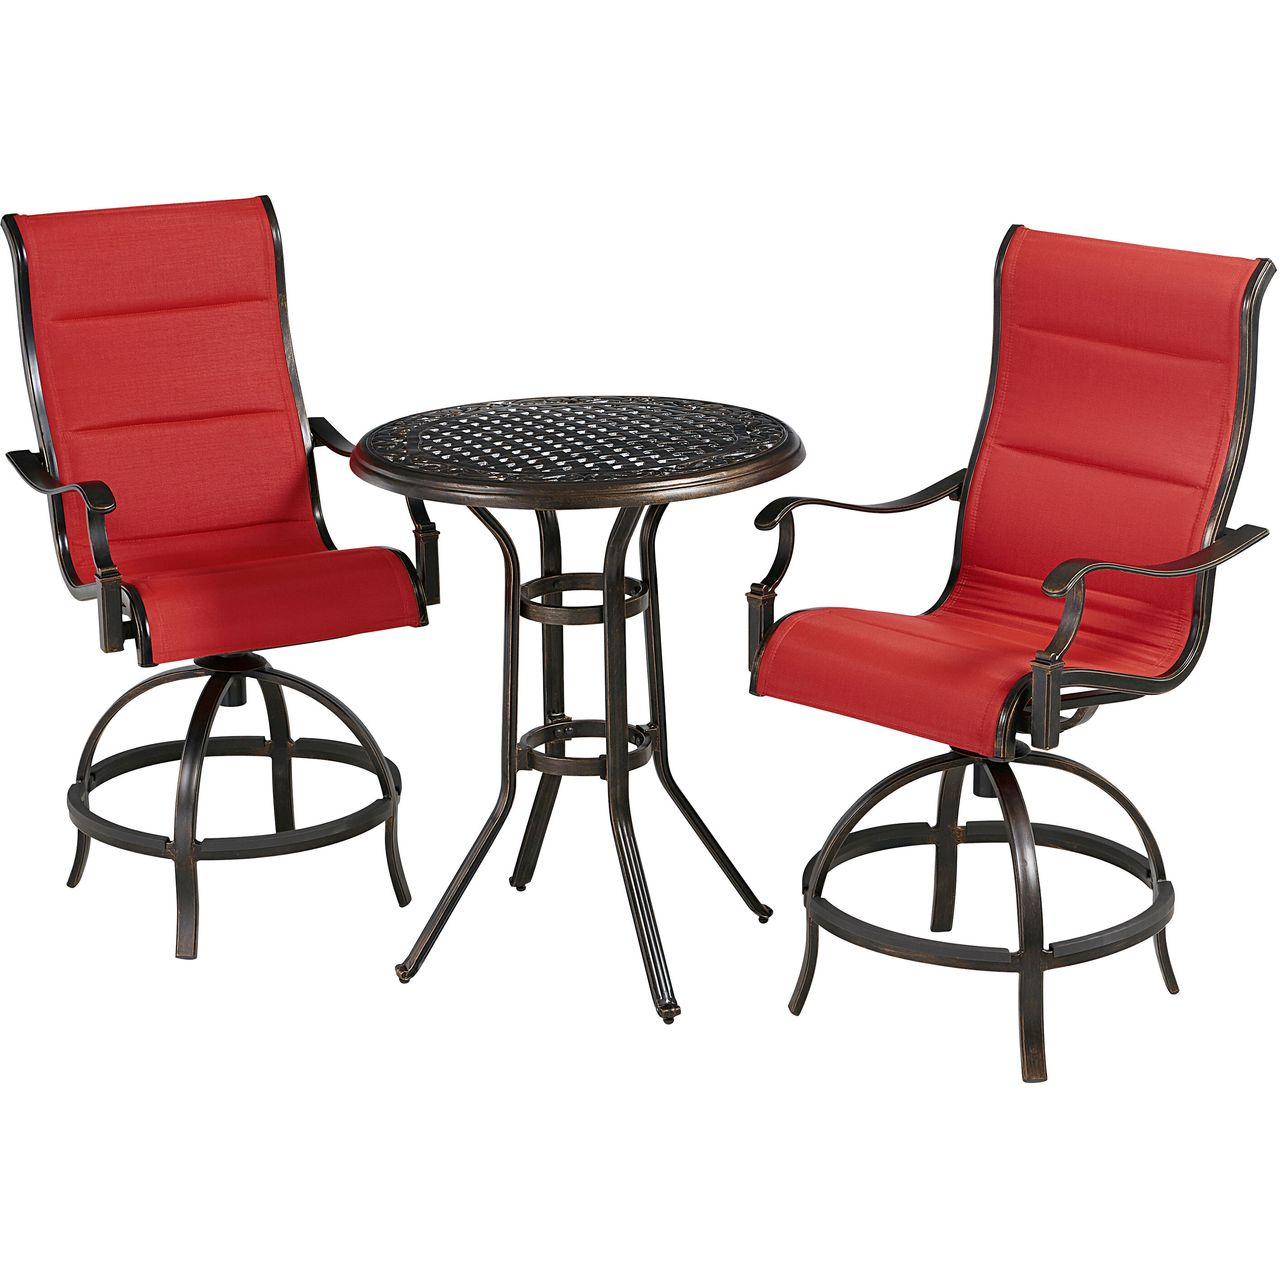 """Hanover Traditions 3-Pc 30"""" High-Dining Bistro Set With Red Chairs"""